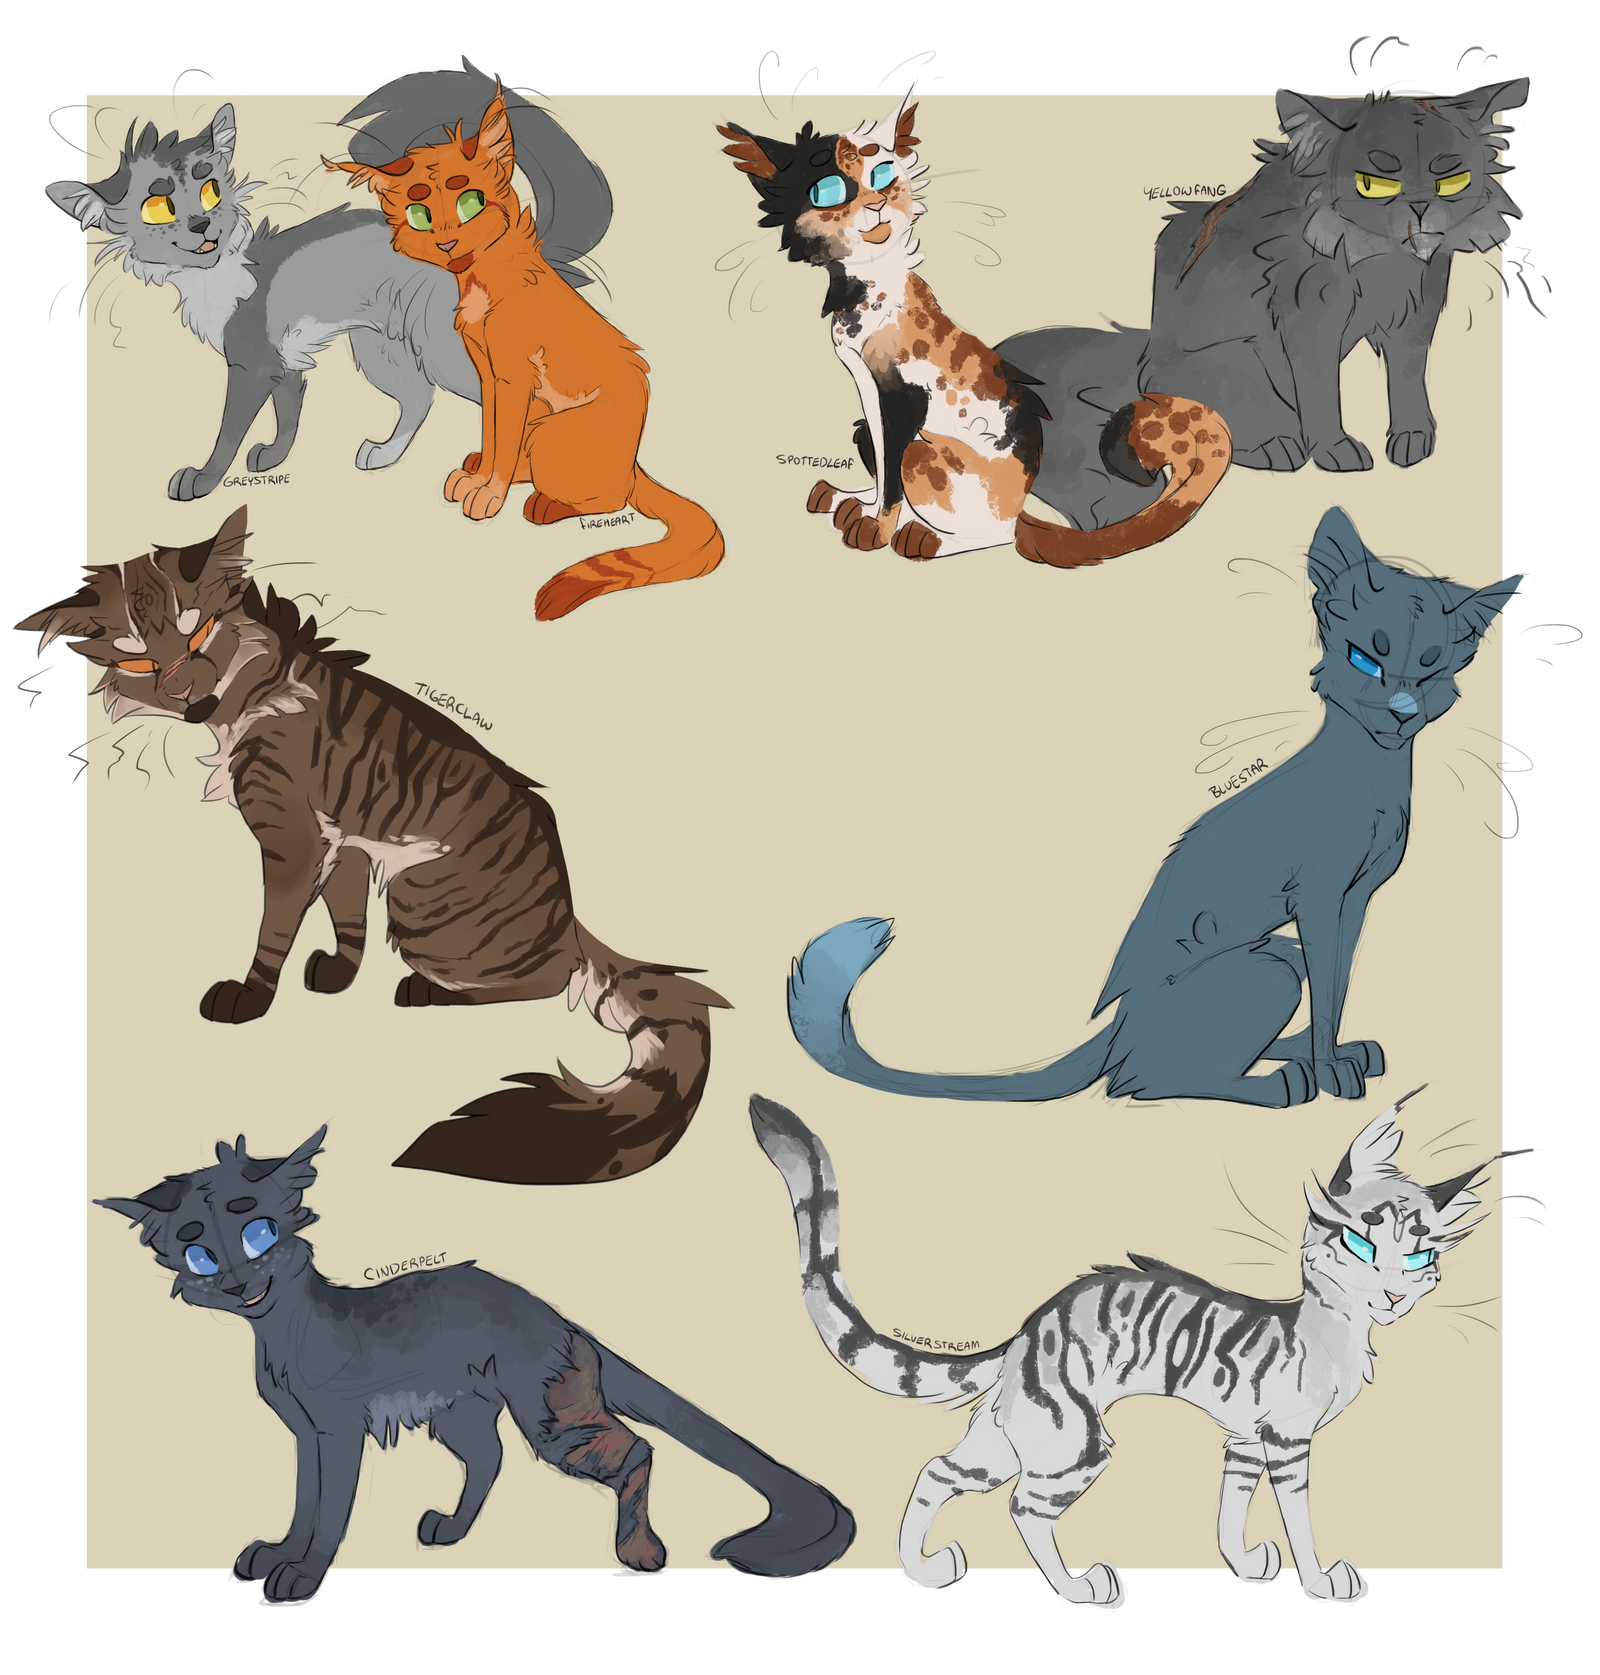 A handful of Warrior Designs by Finchwing on DeviantArt